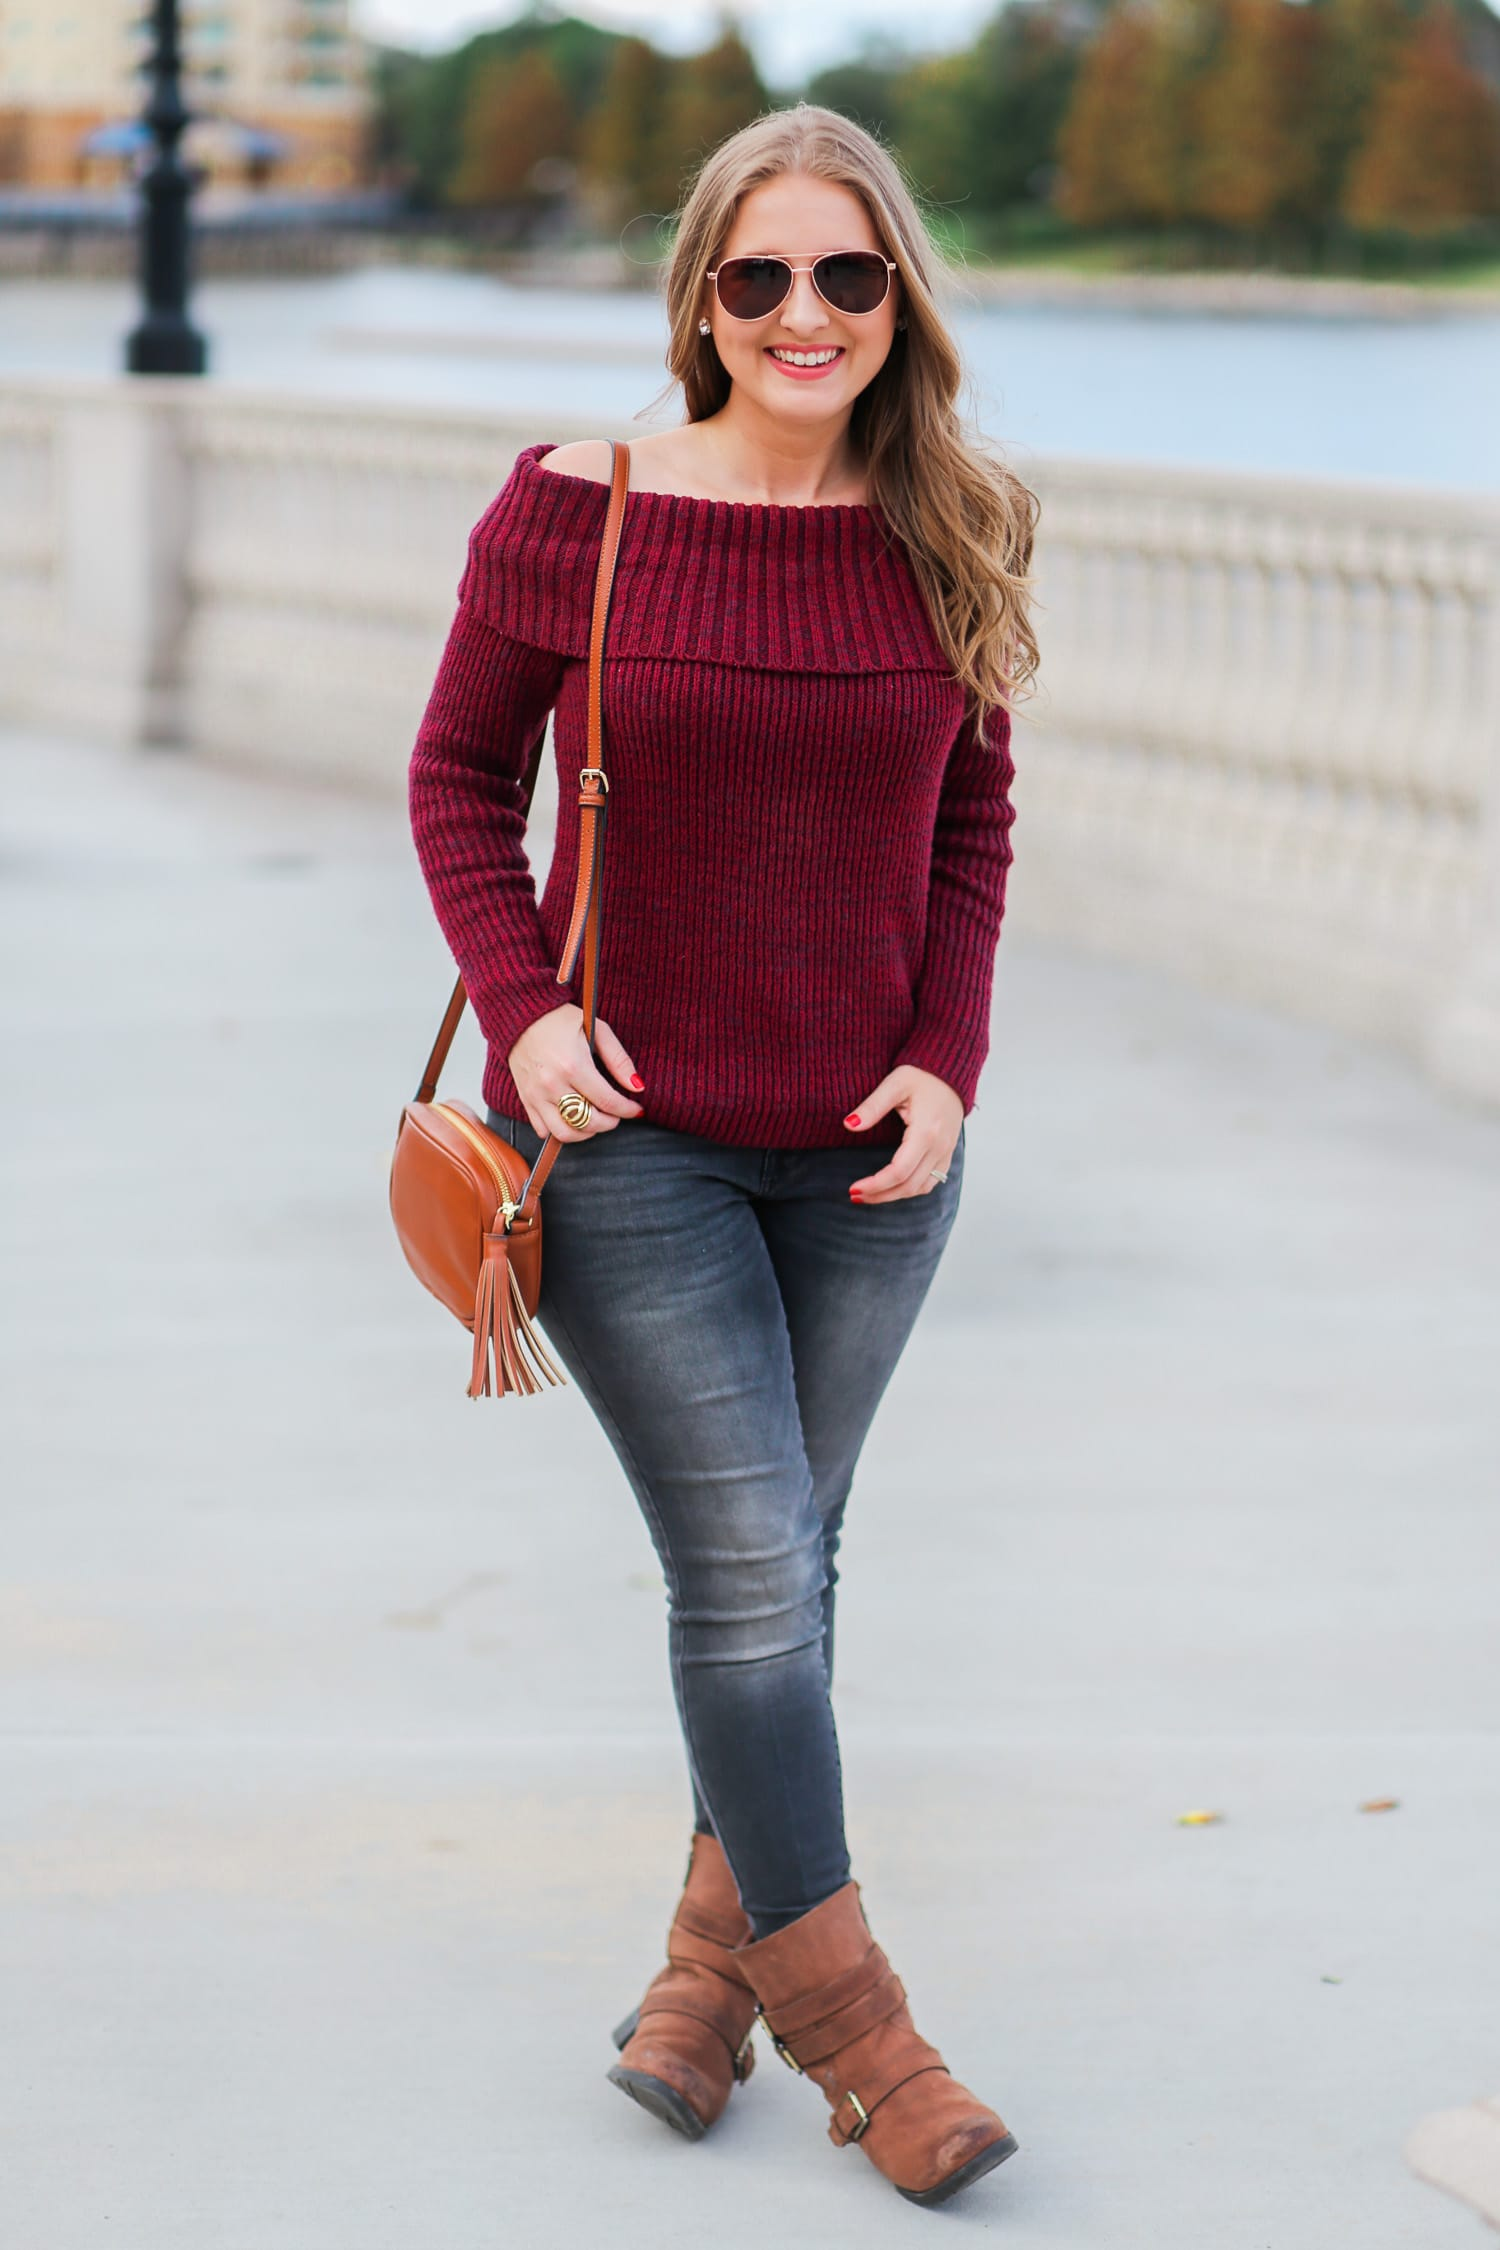 casual-winter-outfit-off-the-shoulder-sweater-gray-jeggins-moto-boots-foster-grant-rose-gold-aviator-sunglasses-7785-3